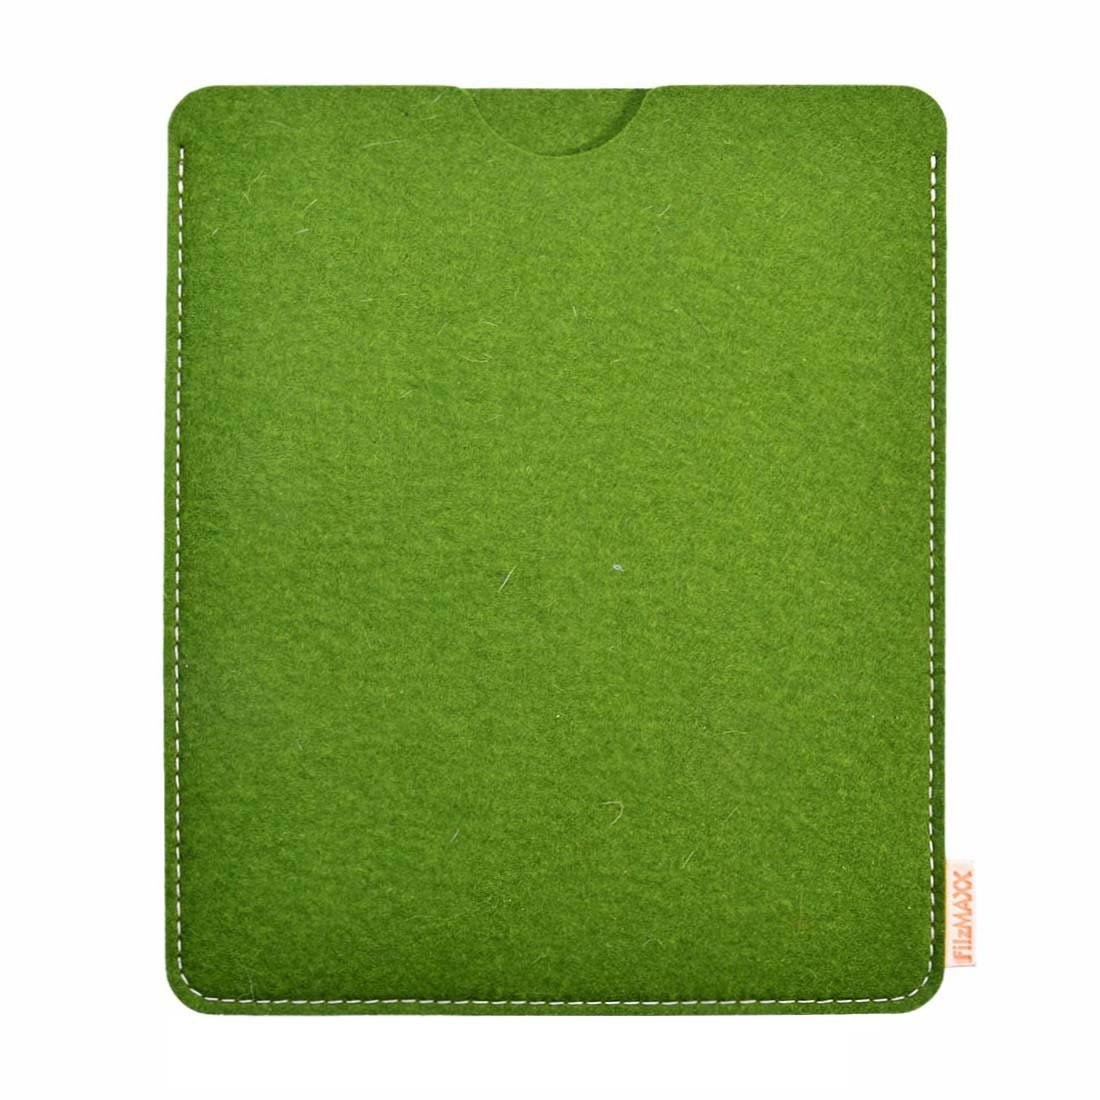 Tablet-Tasche Lusy